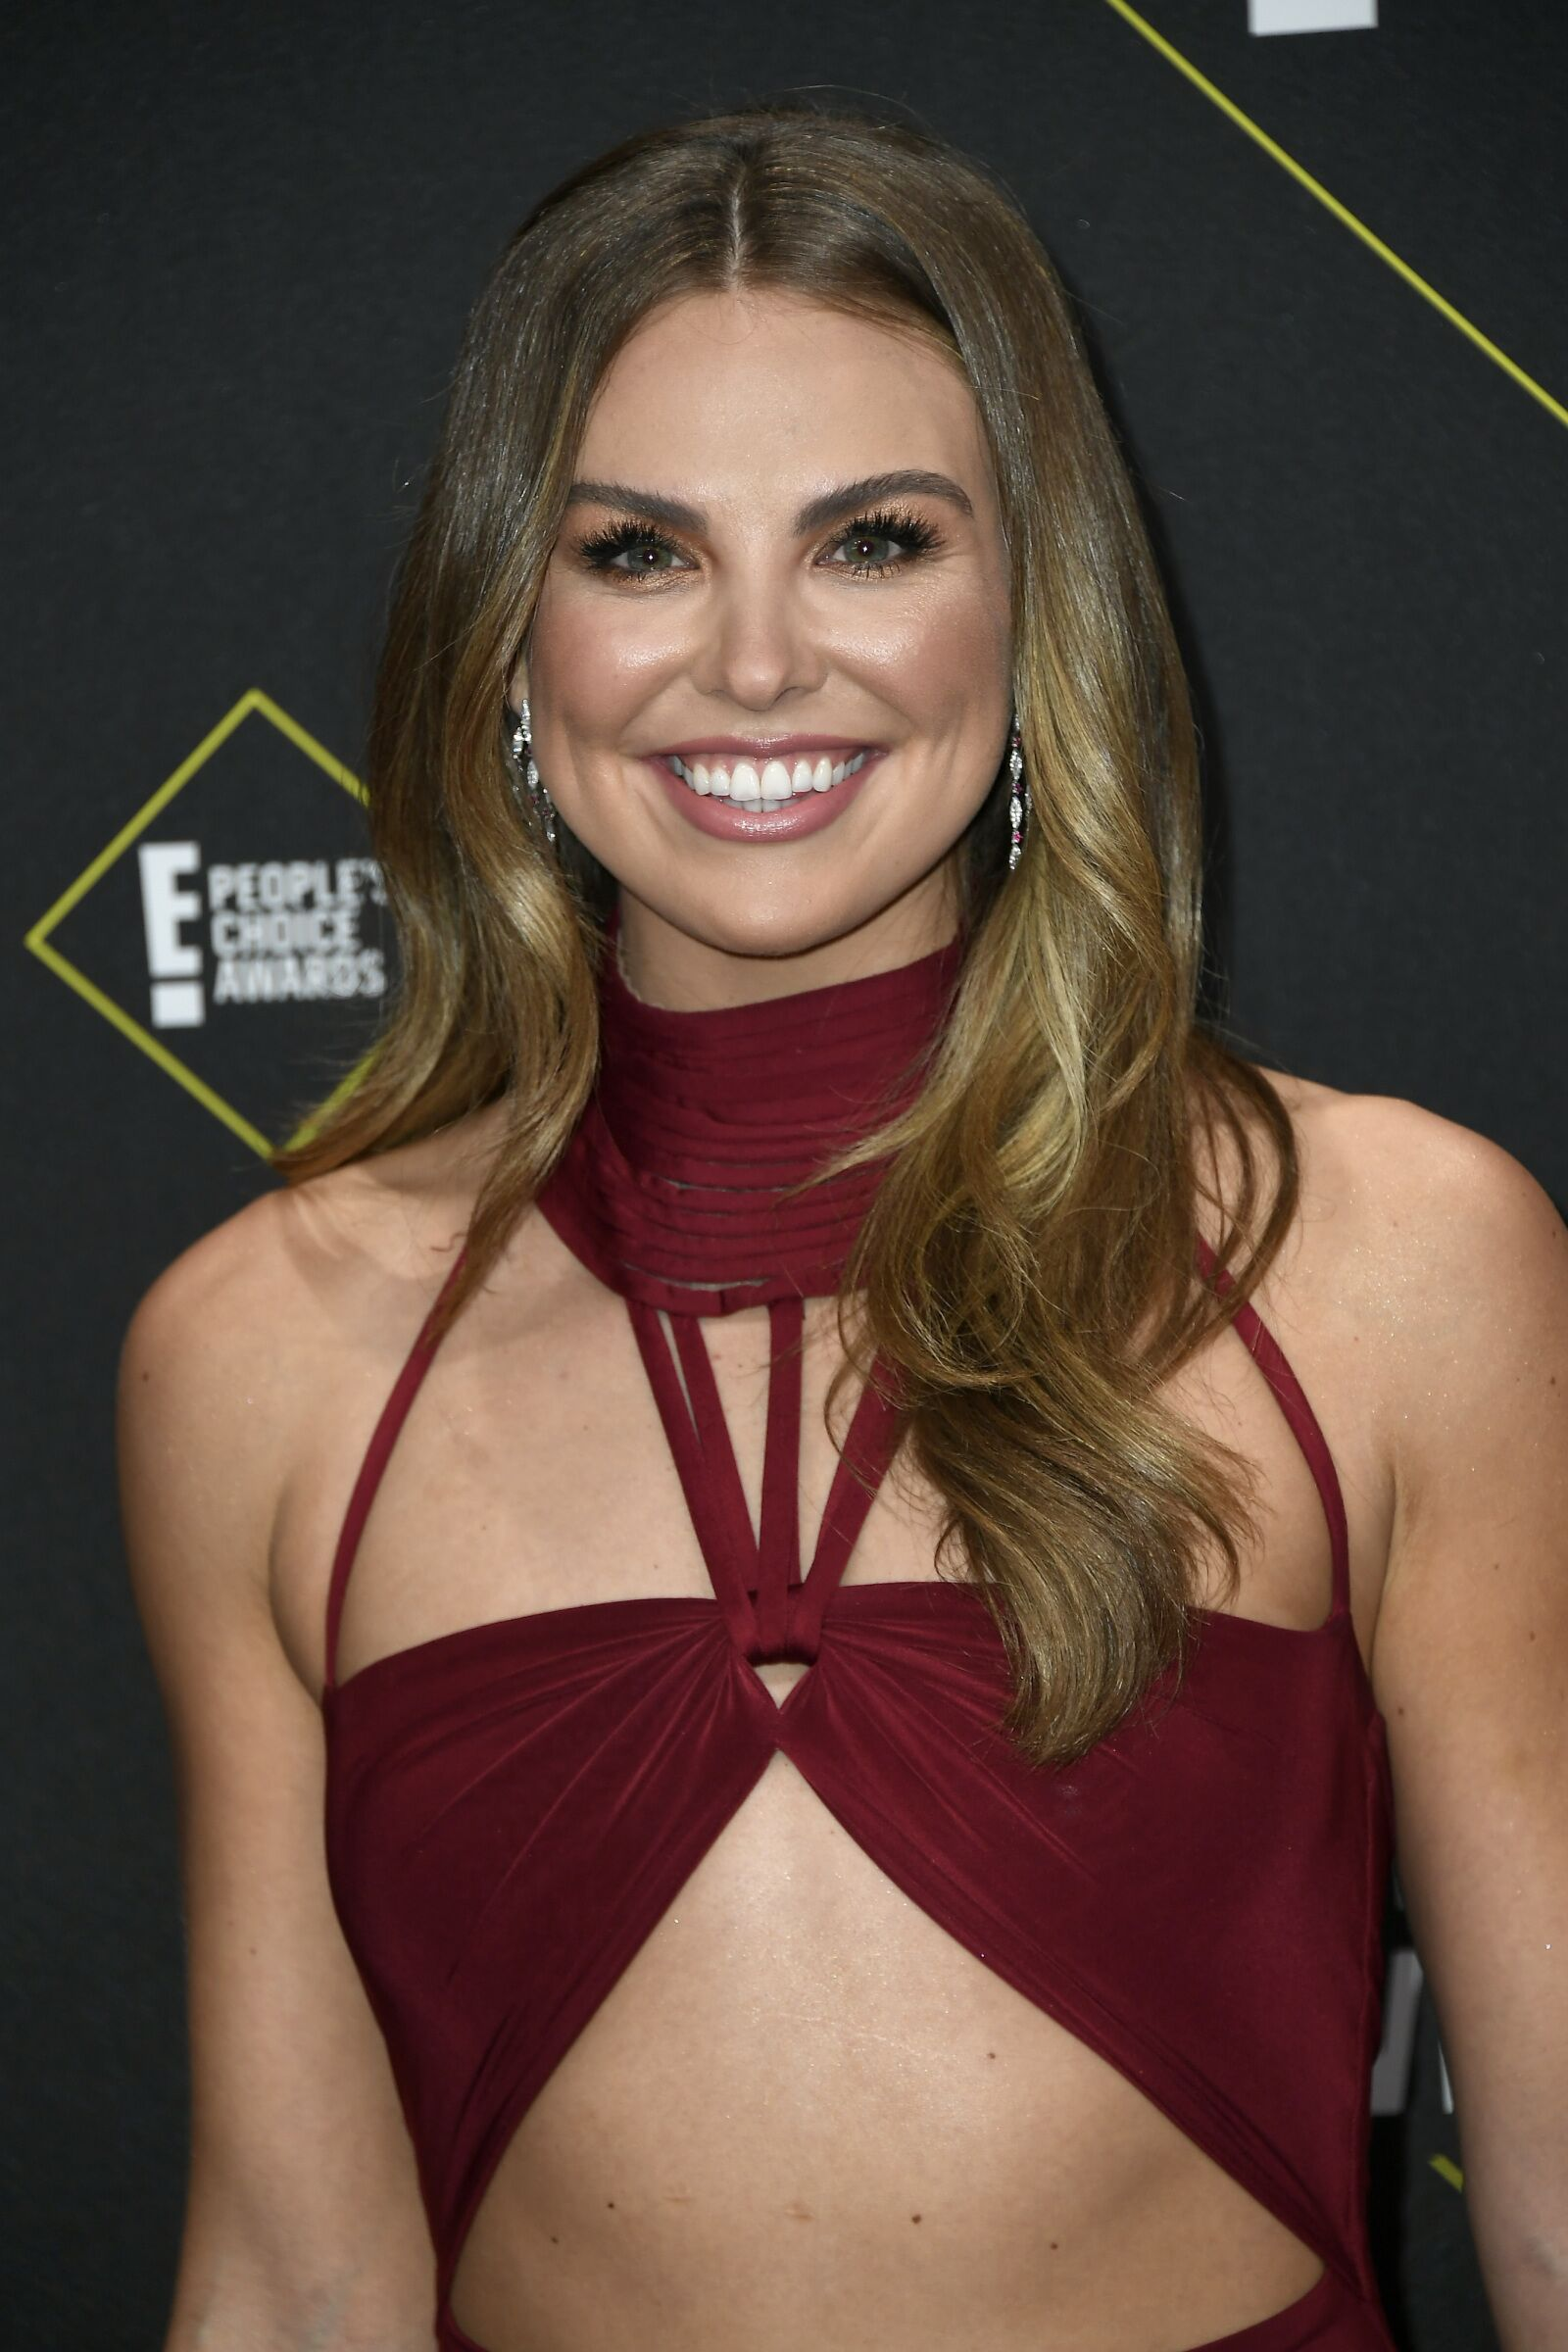 Hannah Brown wins Competition Contestant of 2019 at People's Choice Awards